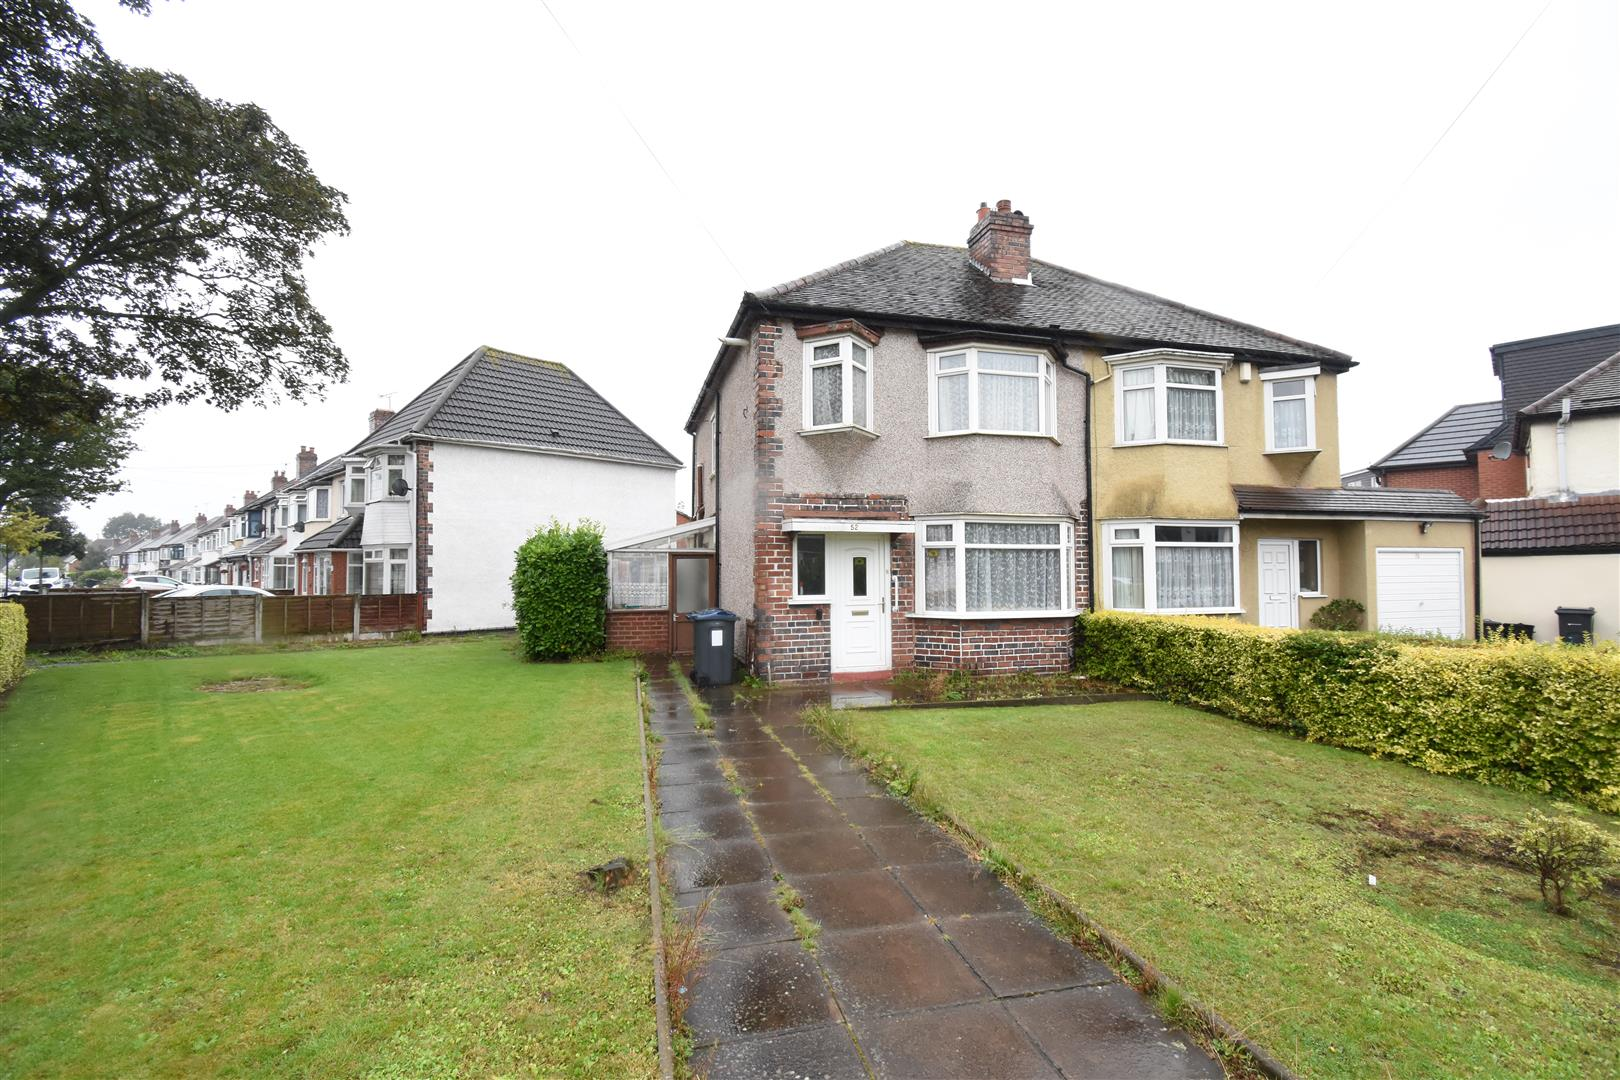 3 bed house for sale in Mickleover Road, Birmingham 7